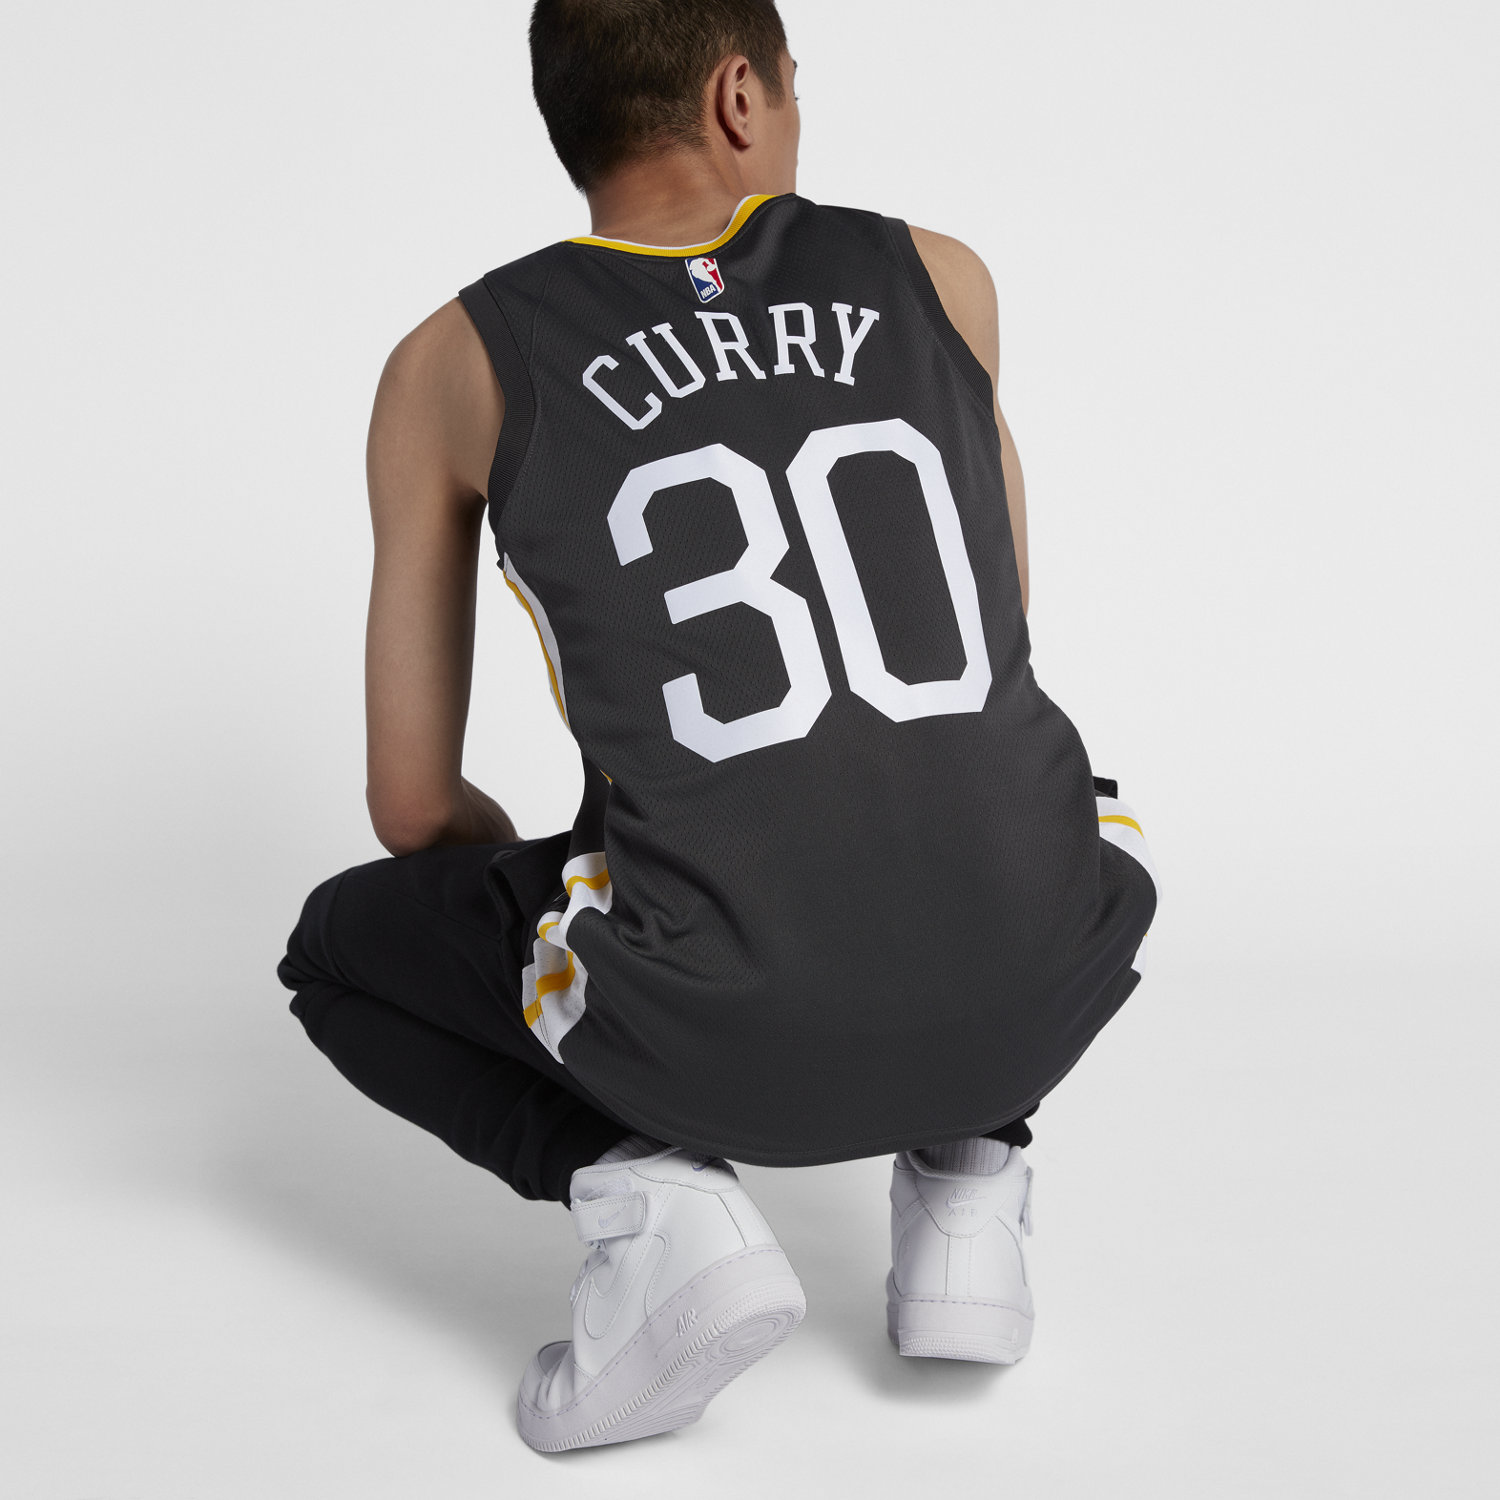 reputable site 474b9 98a65 all barkley shoes steph curry hoodie